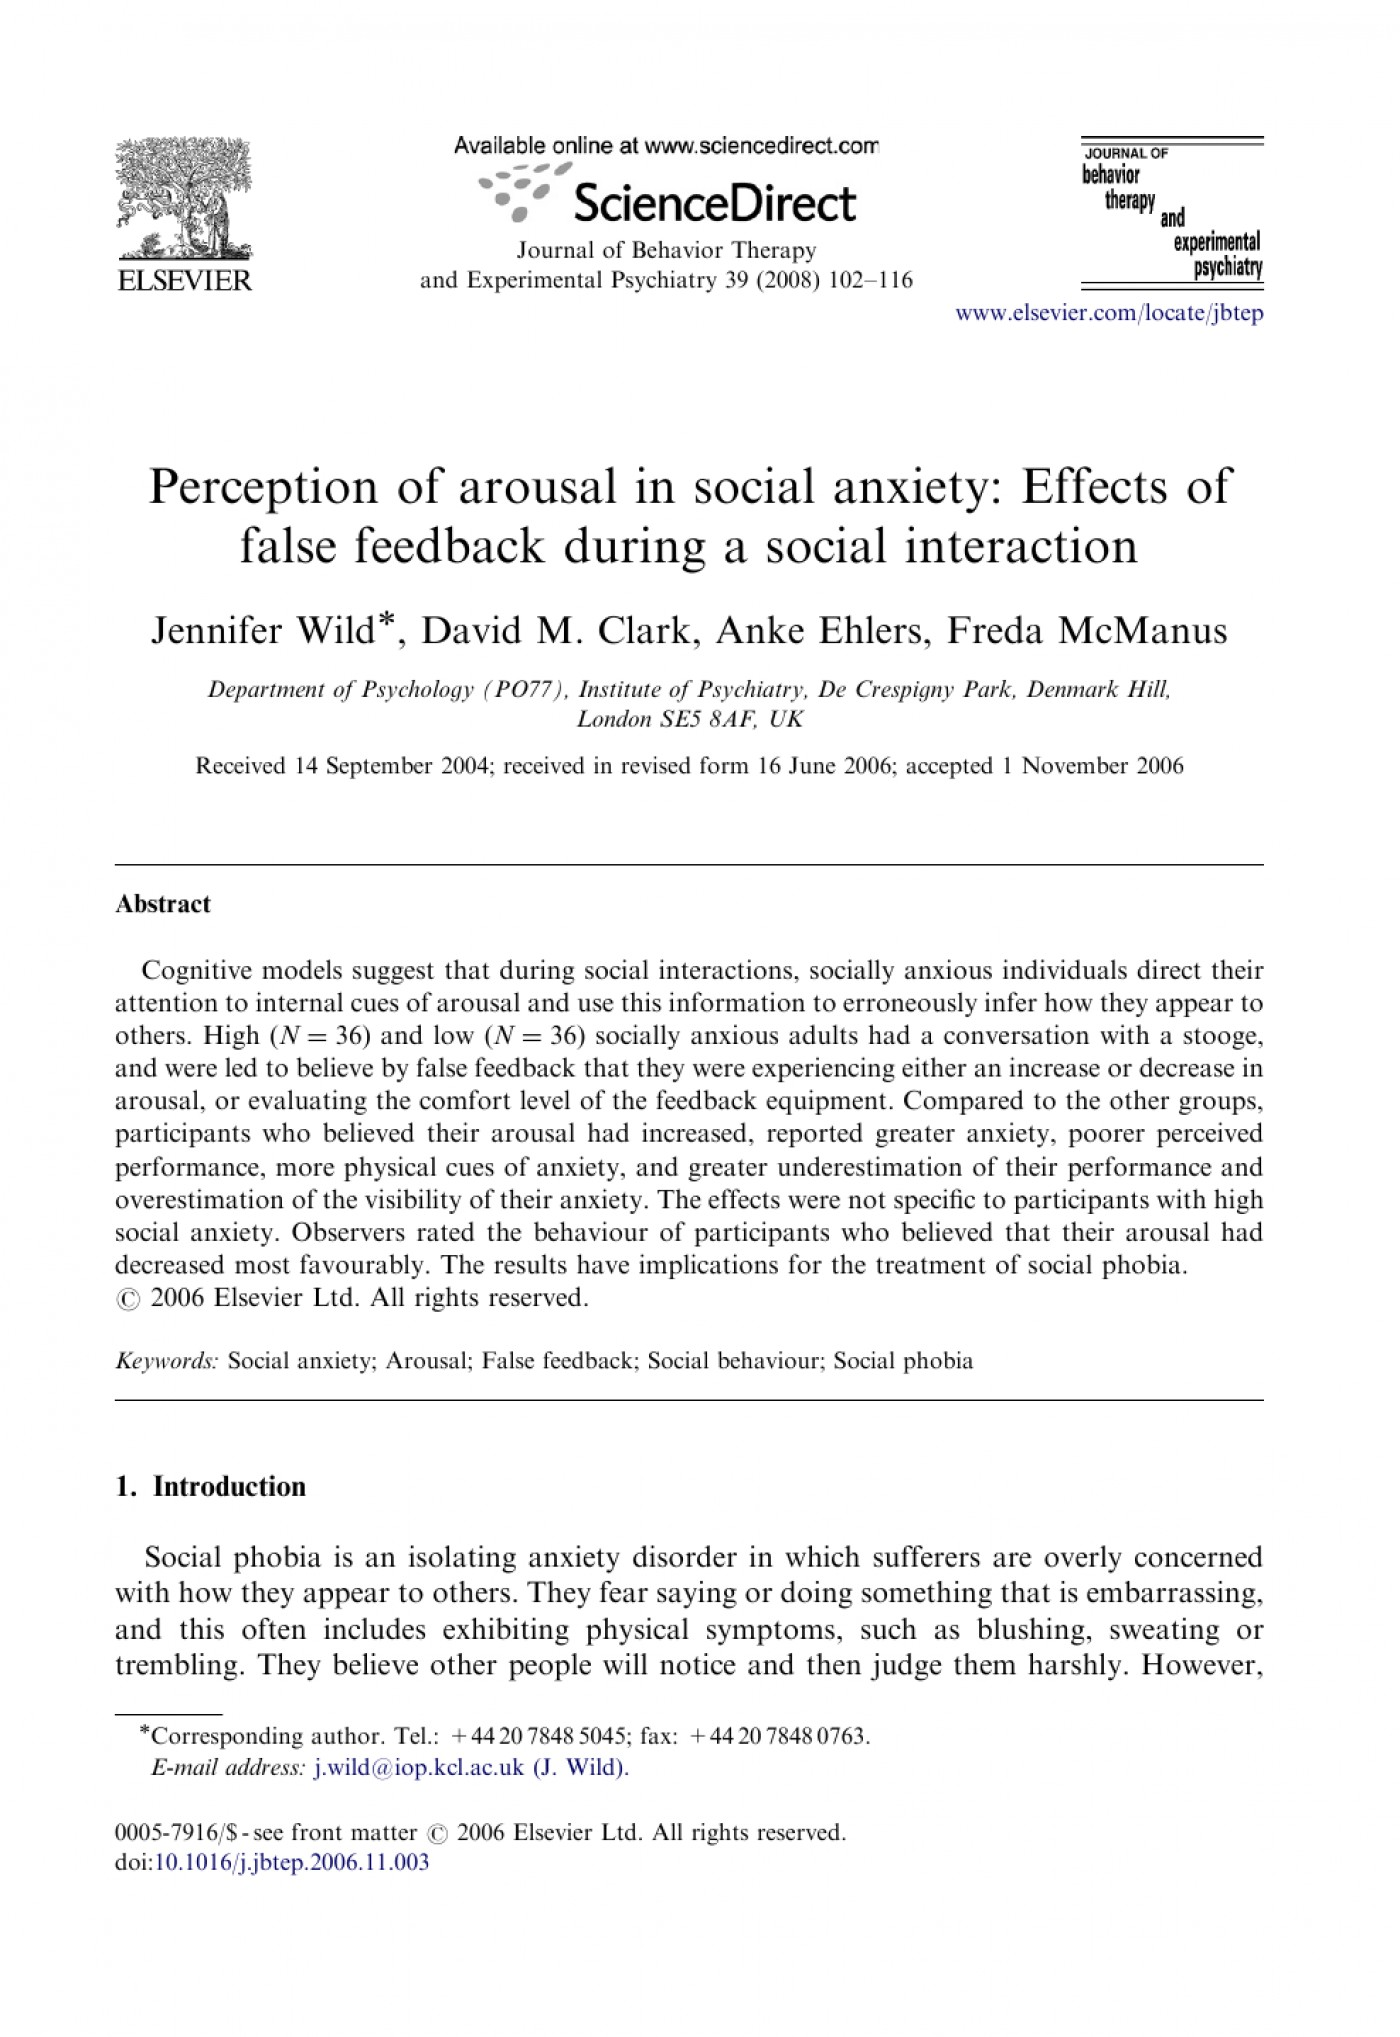 008 Psychology Research Paper On Social Anxiety Disorder Staggering 1400